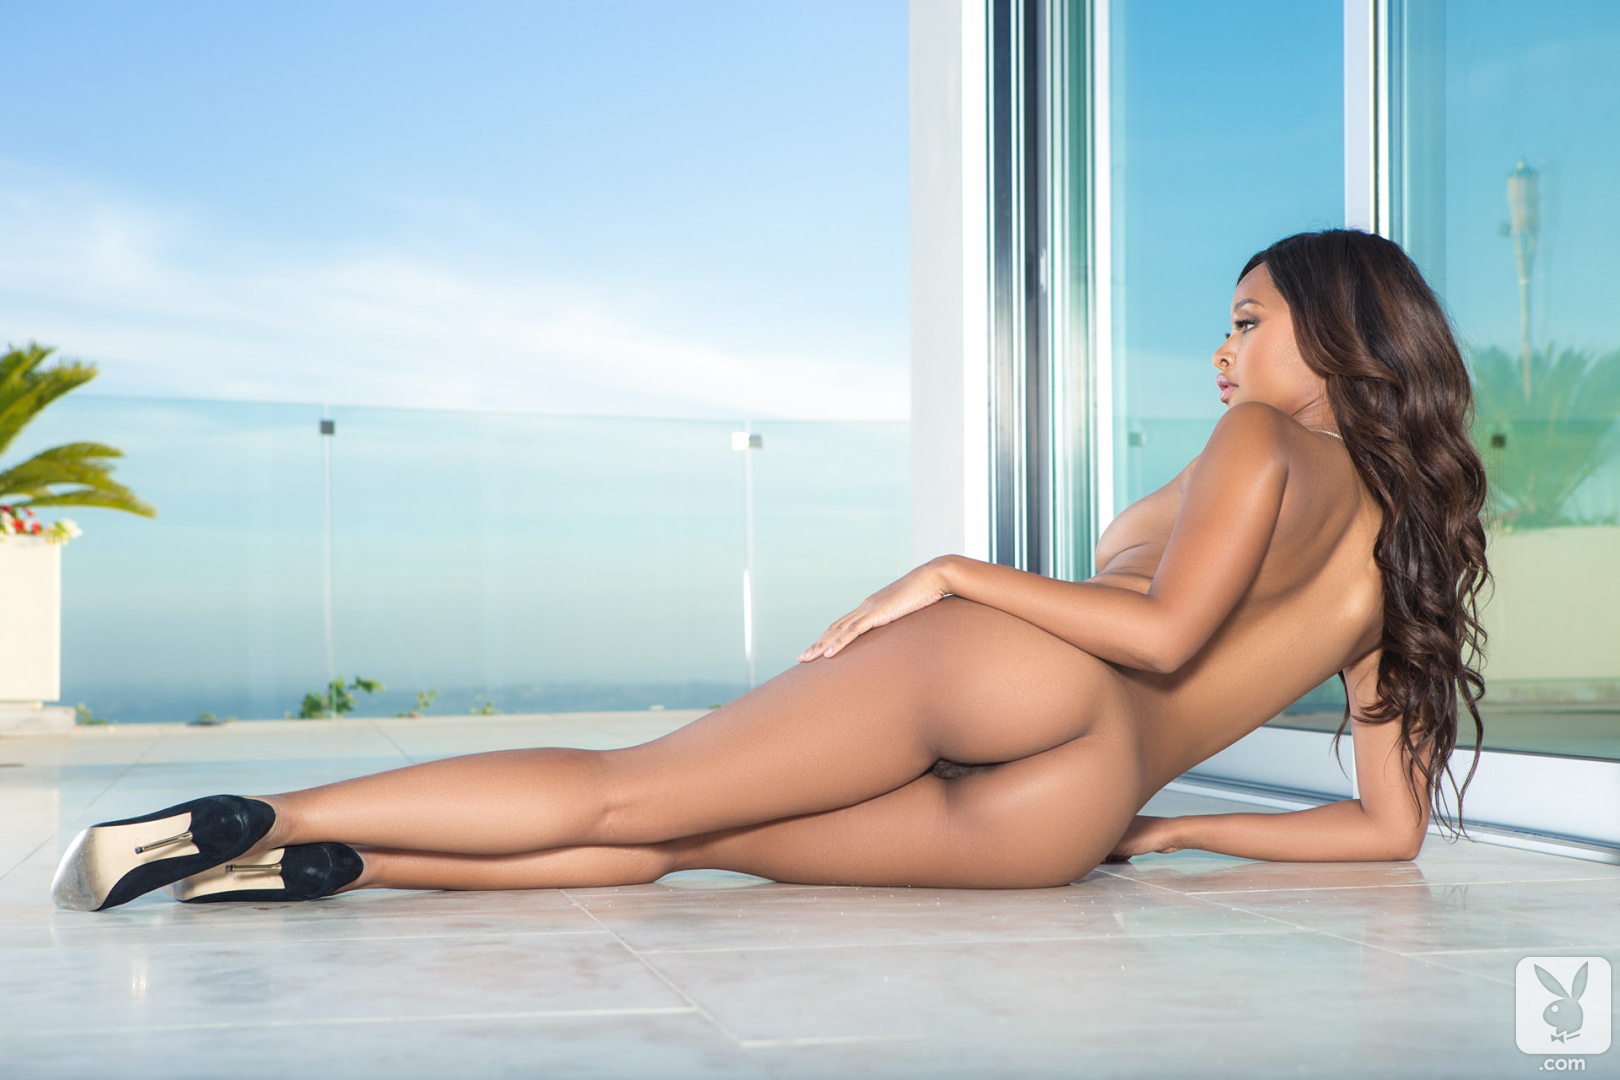 cybergirl-nude-blu-cantrell-pornography-pics